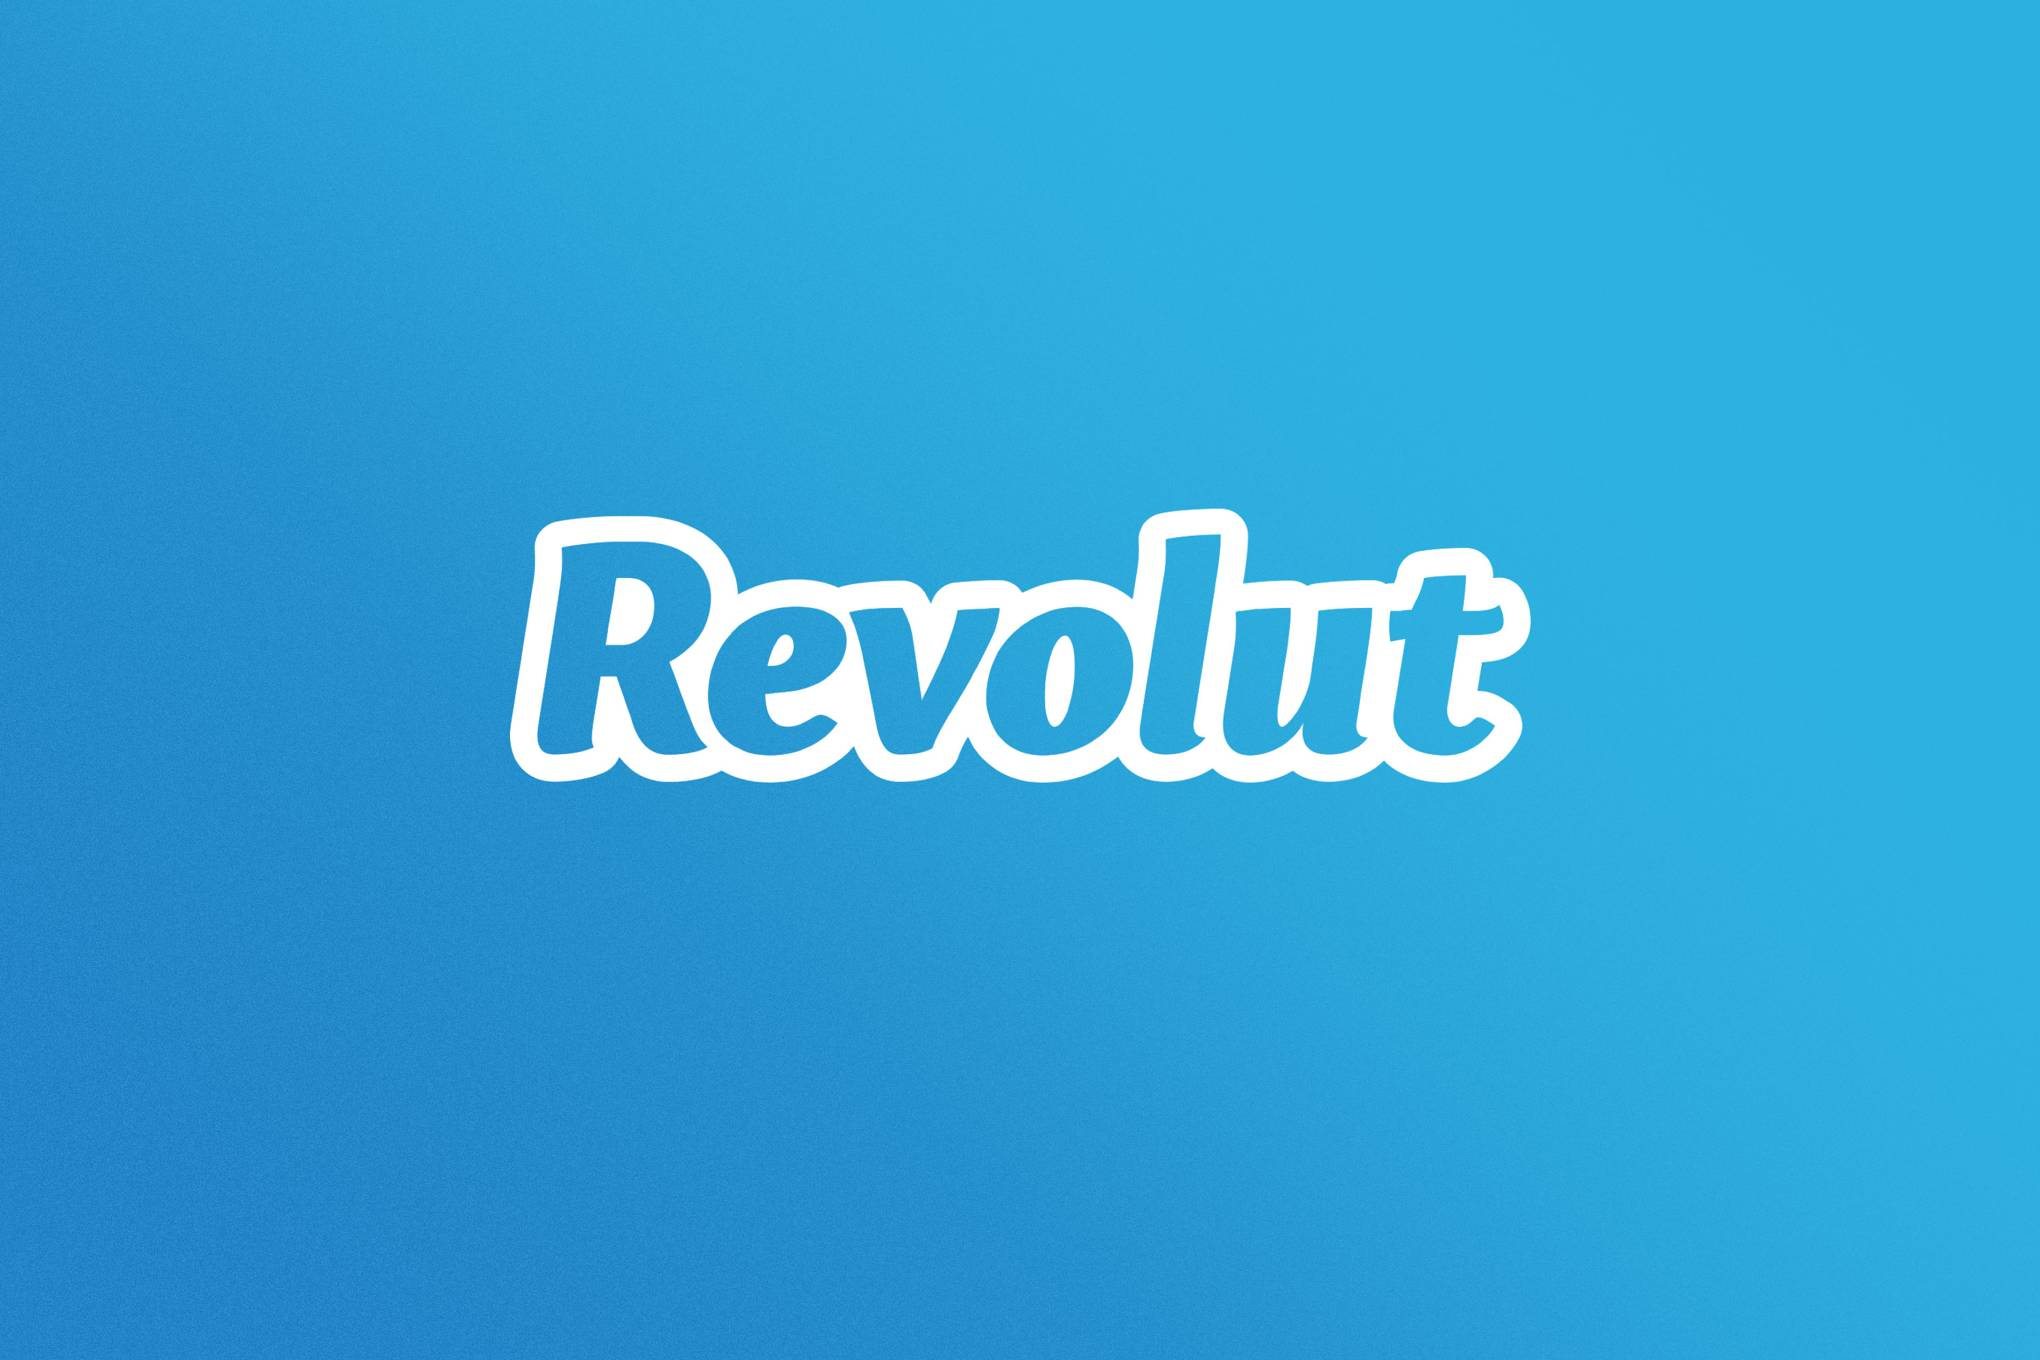 Revolut review: the challenger bank for frequent travellers